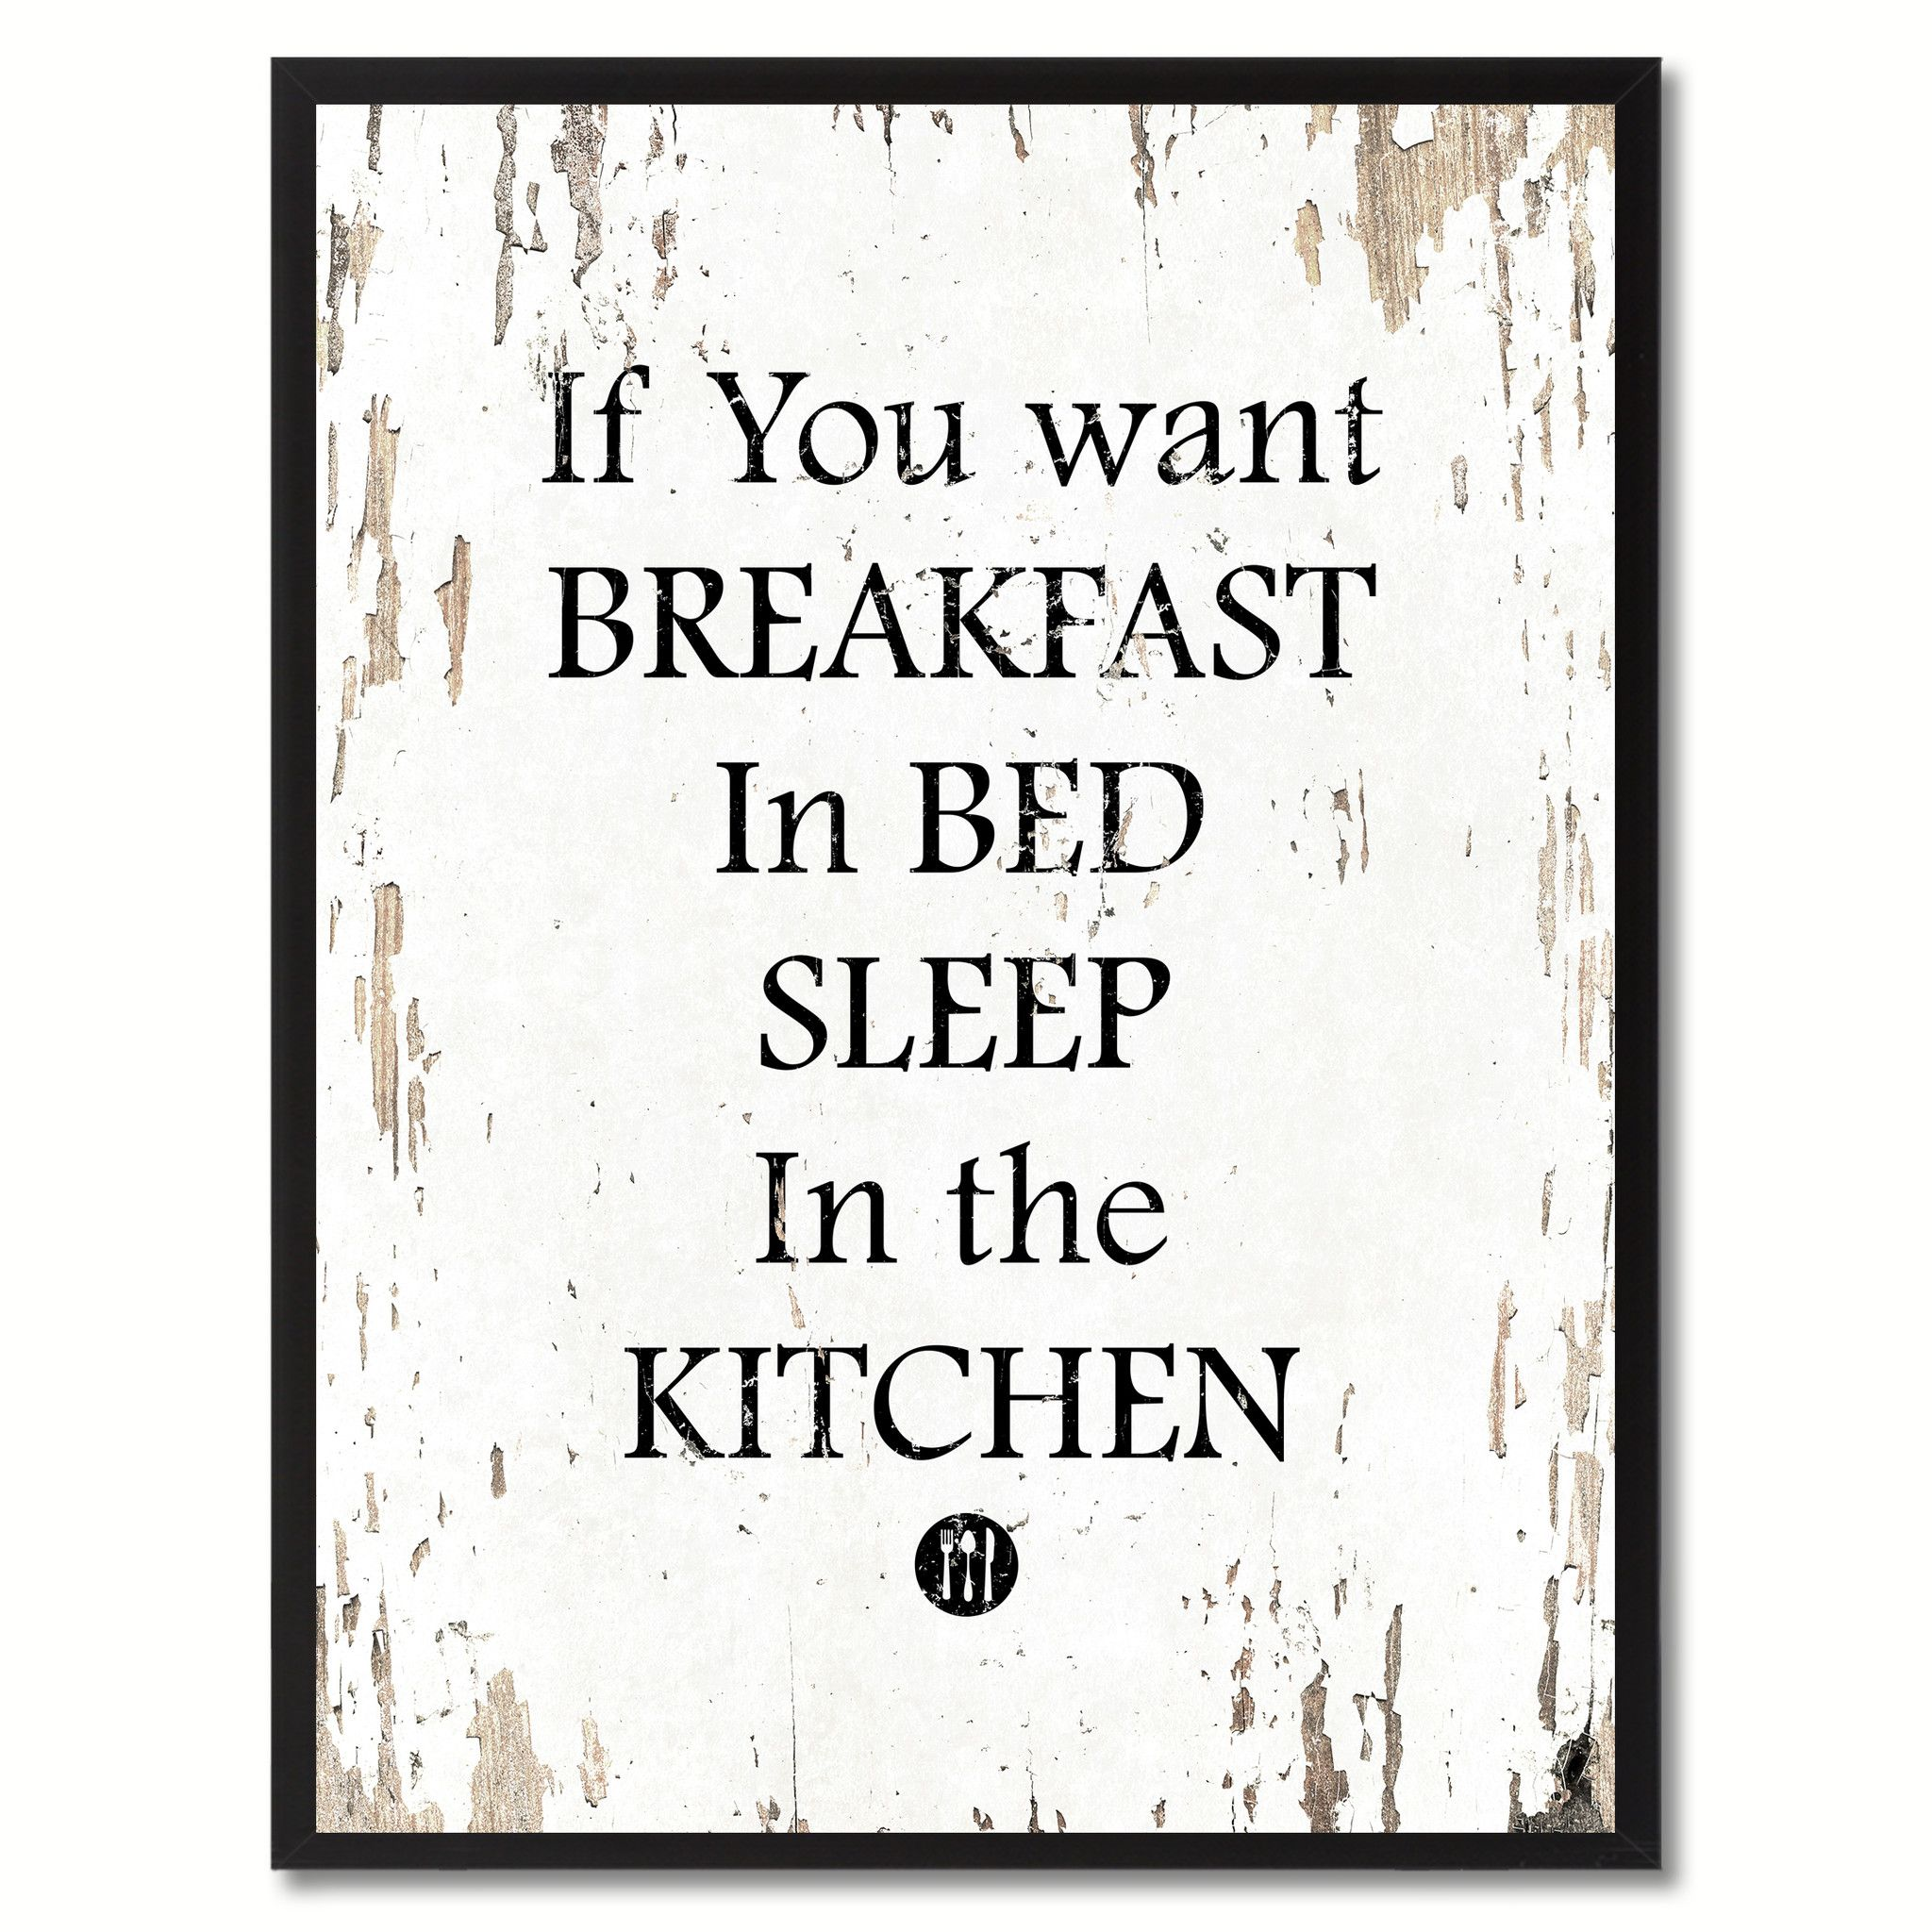 If You Want Breakfast Funny Quote Saying Gift Ideas Home Decor Wall Art Thanksgiving Wall Art Wall Art Gift Home Decor Wall Art